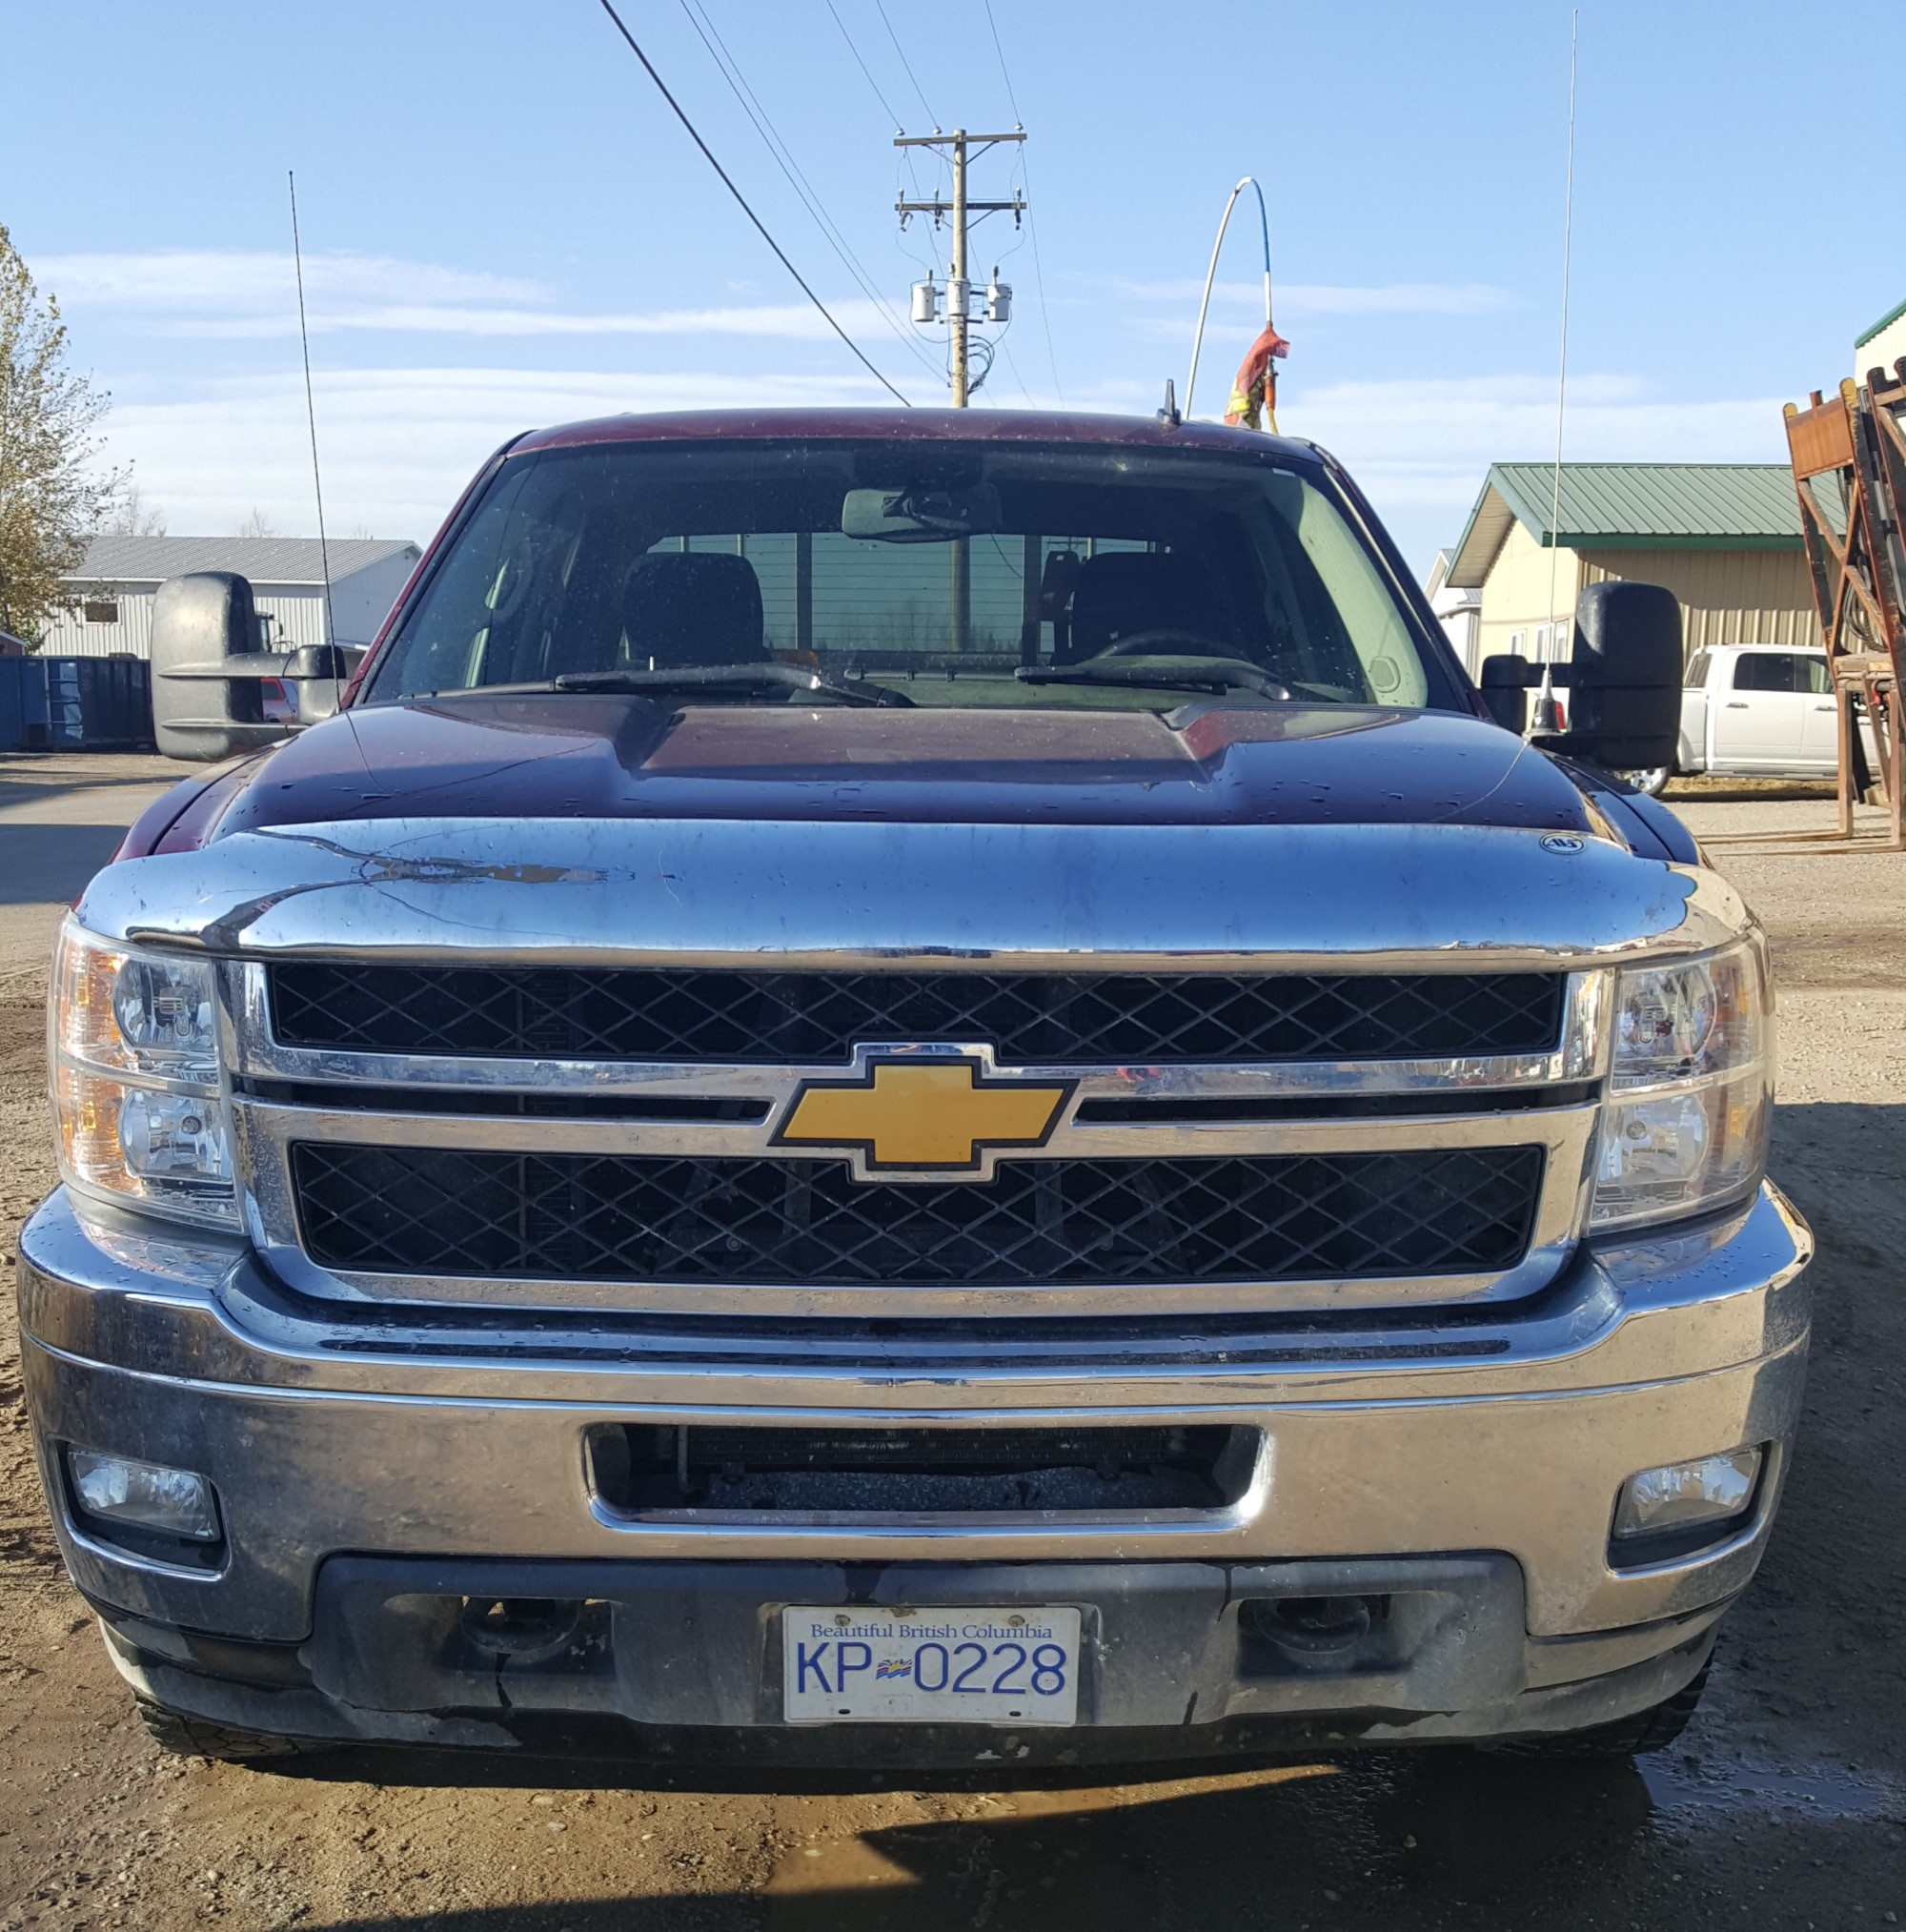 2014 Chevy HD 3500 Crew Cab 4X4